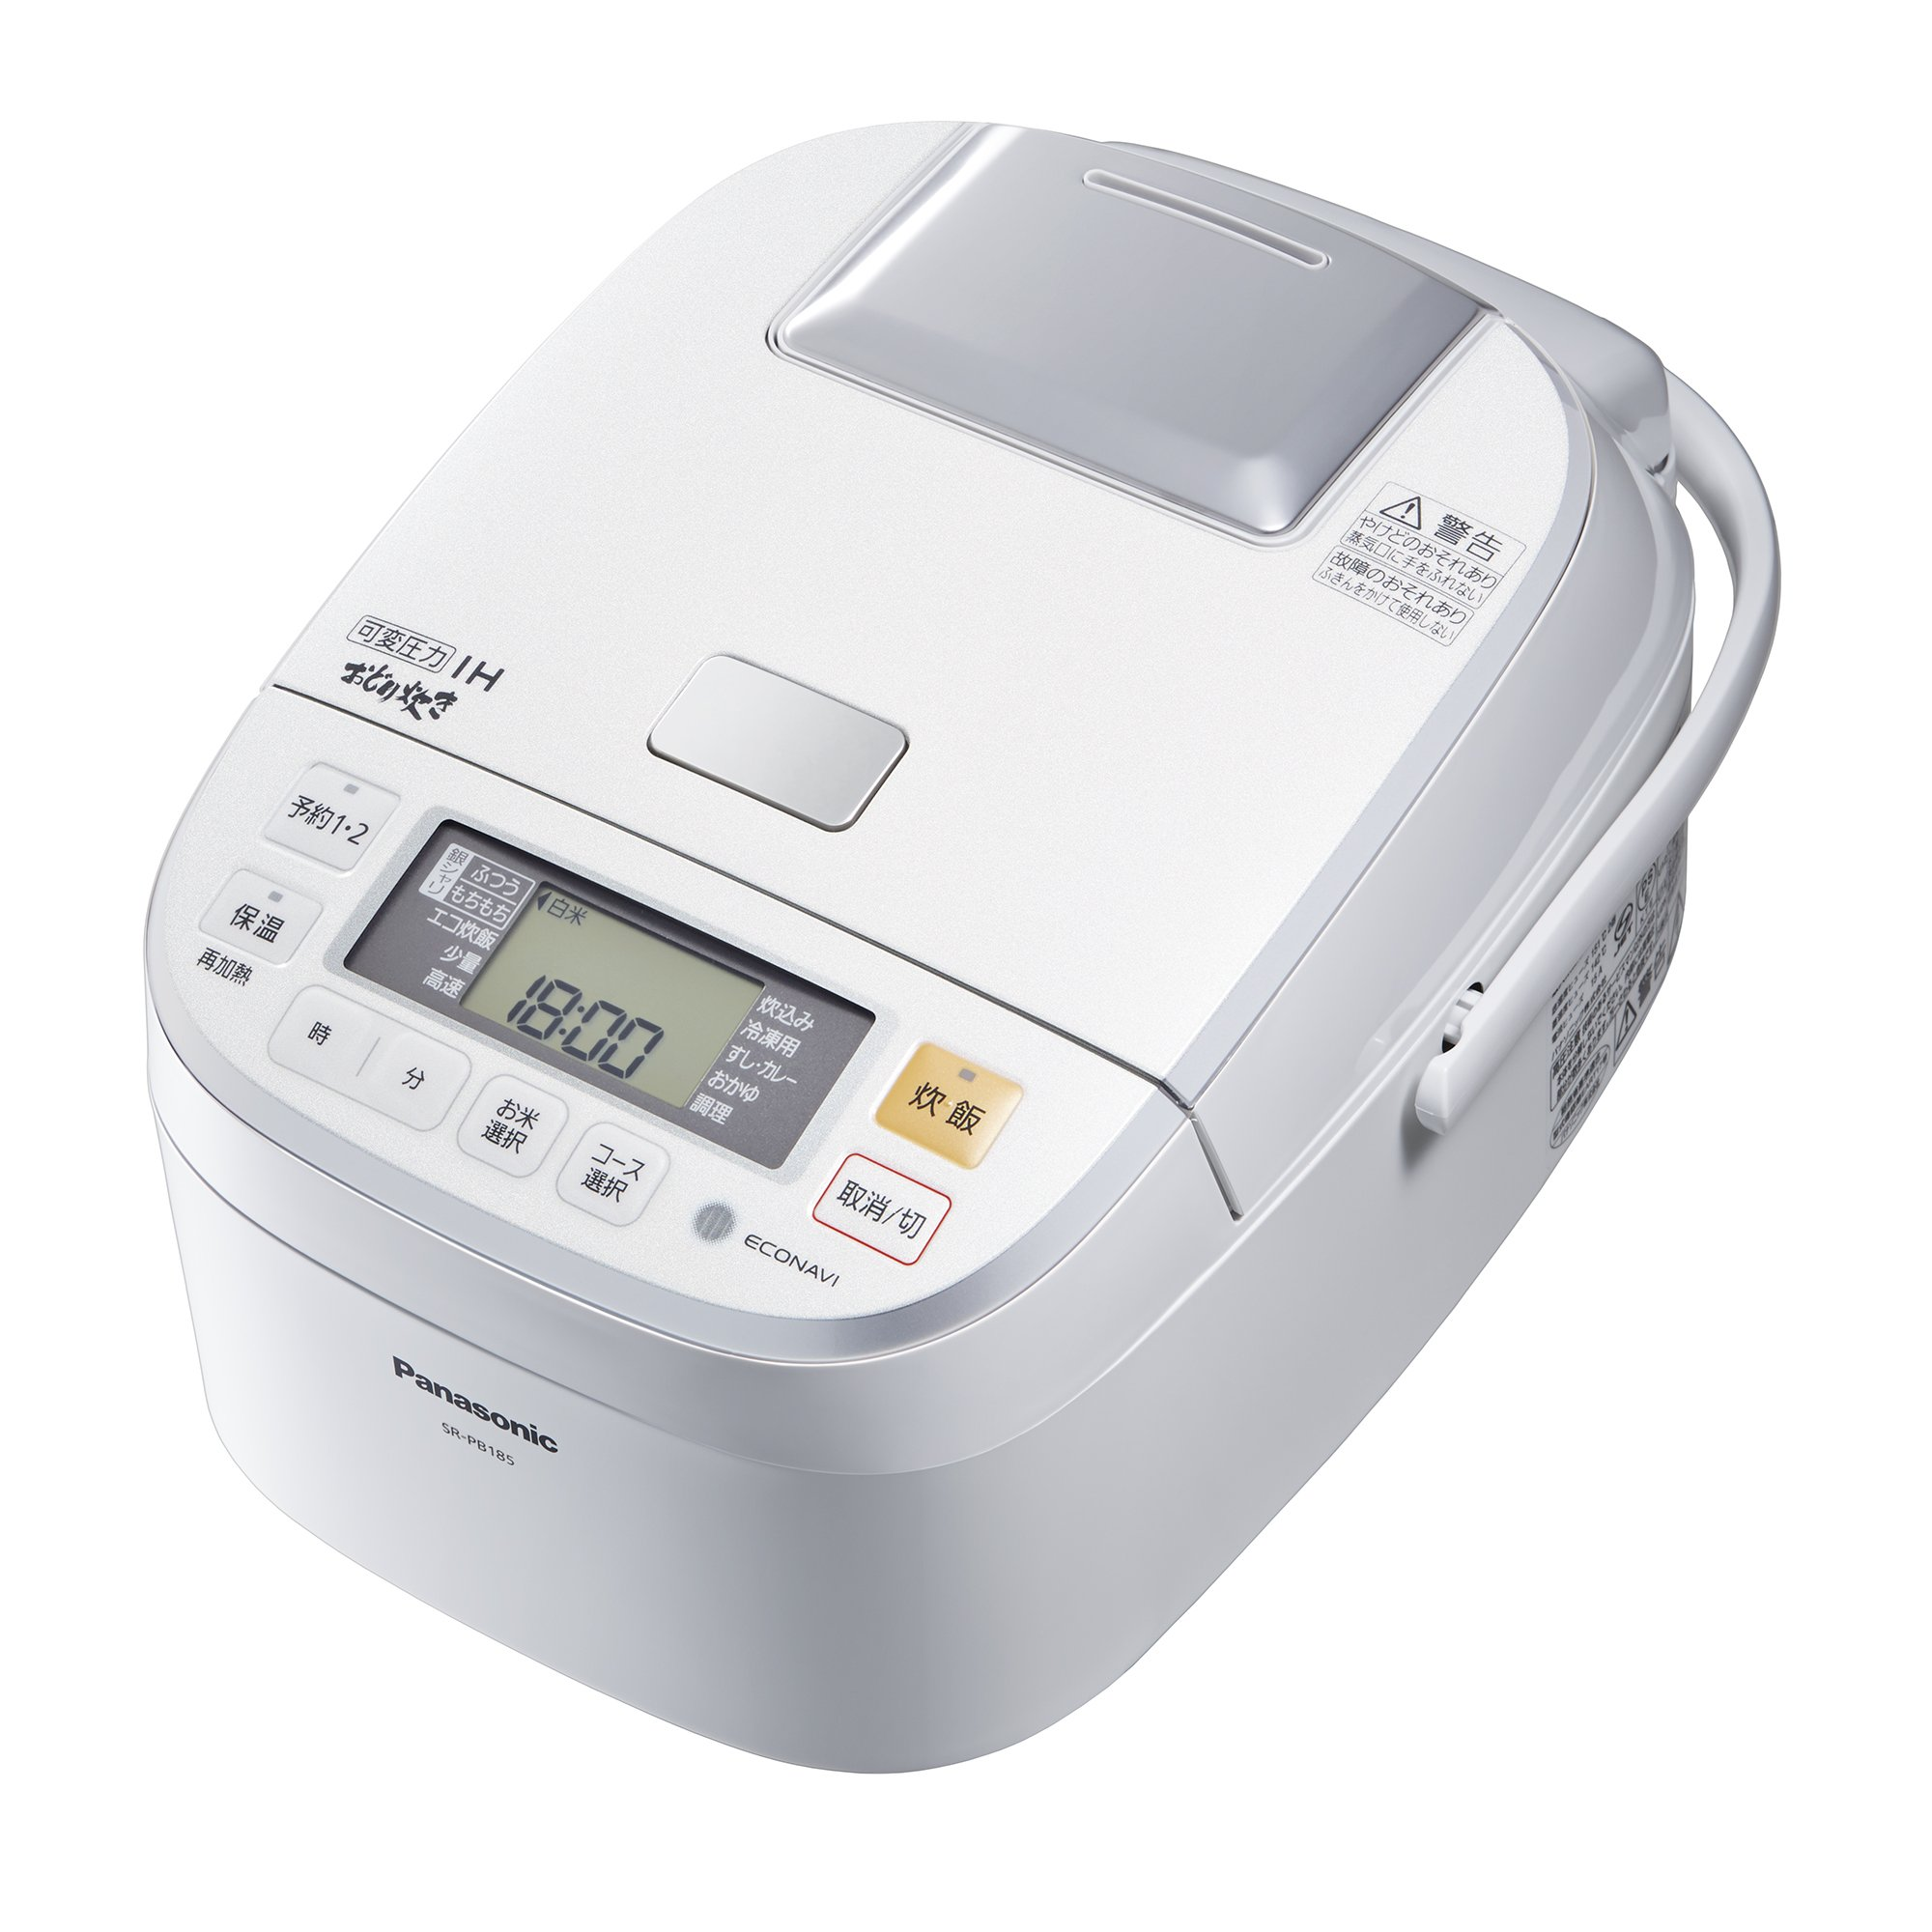 Panasonic variable pressure IH rice cookers (cook 1 bushel) White dance cook SR-PB185-W